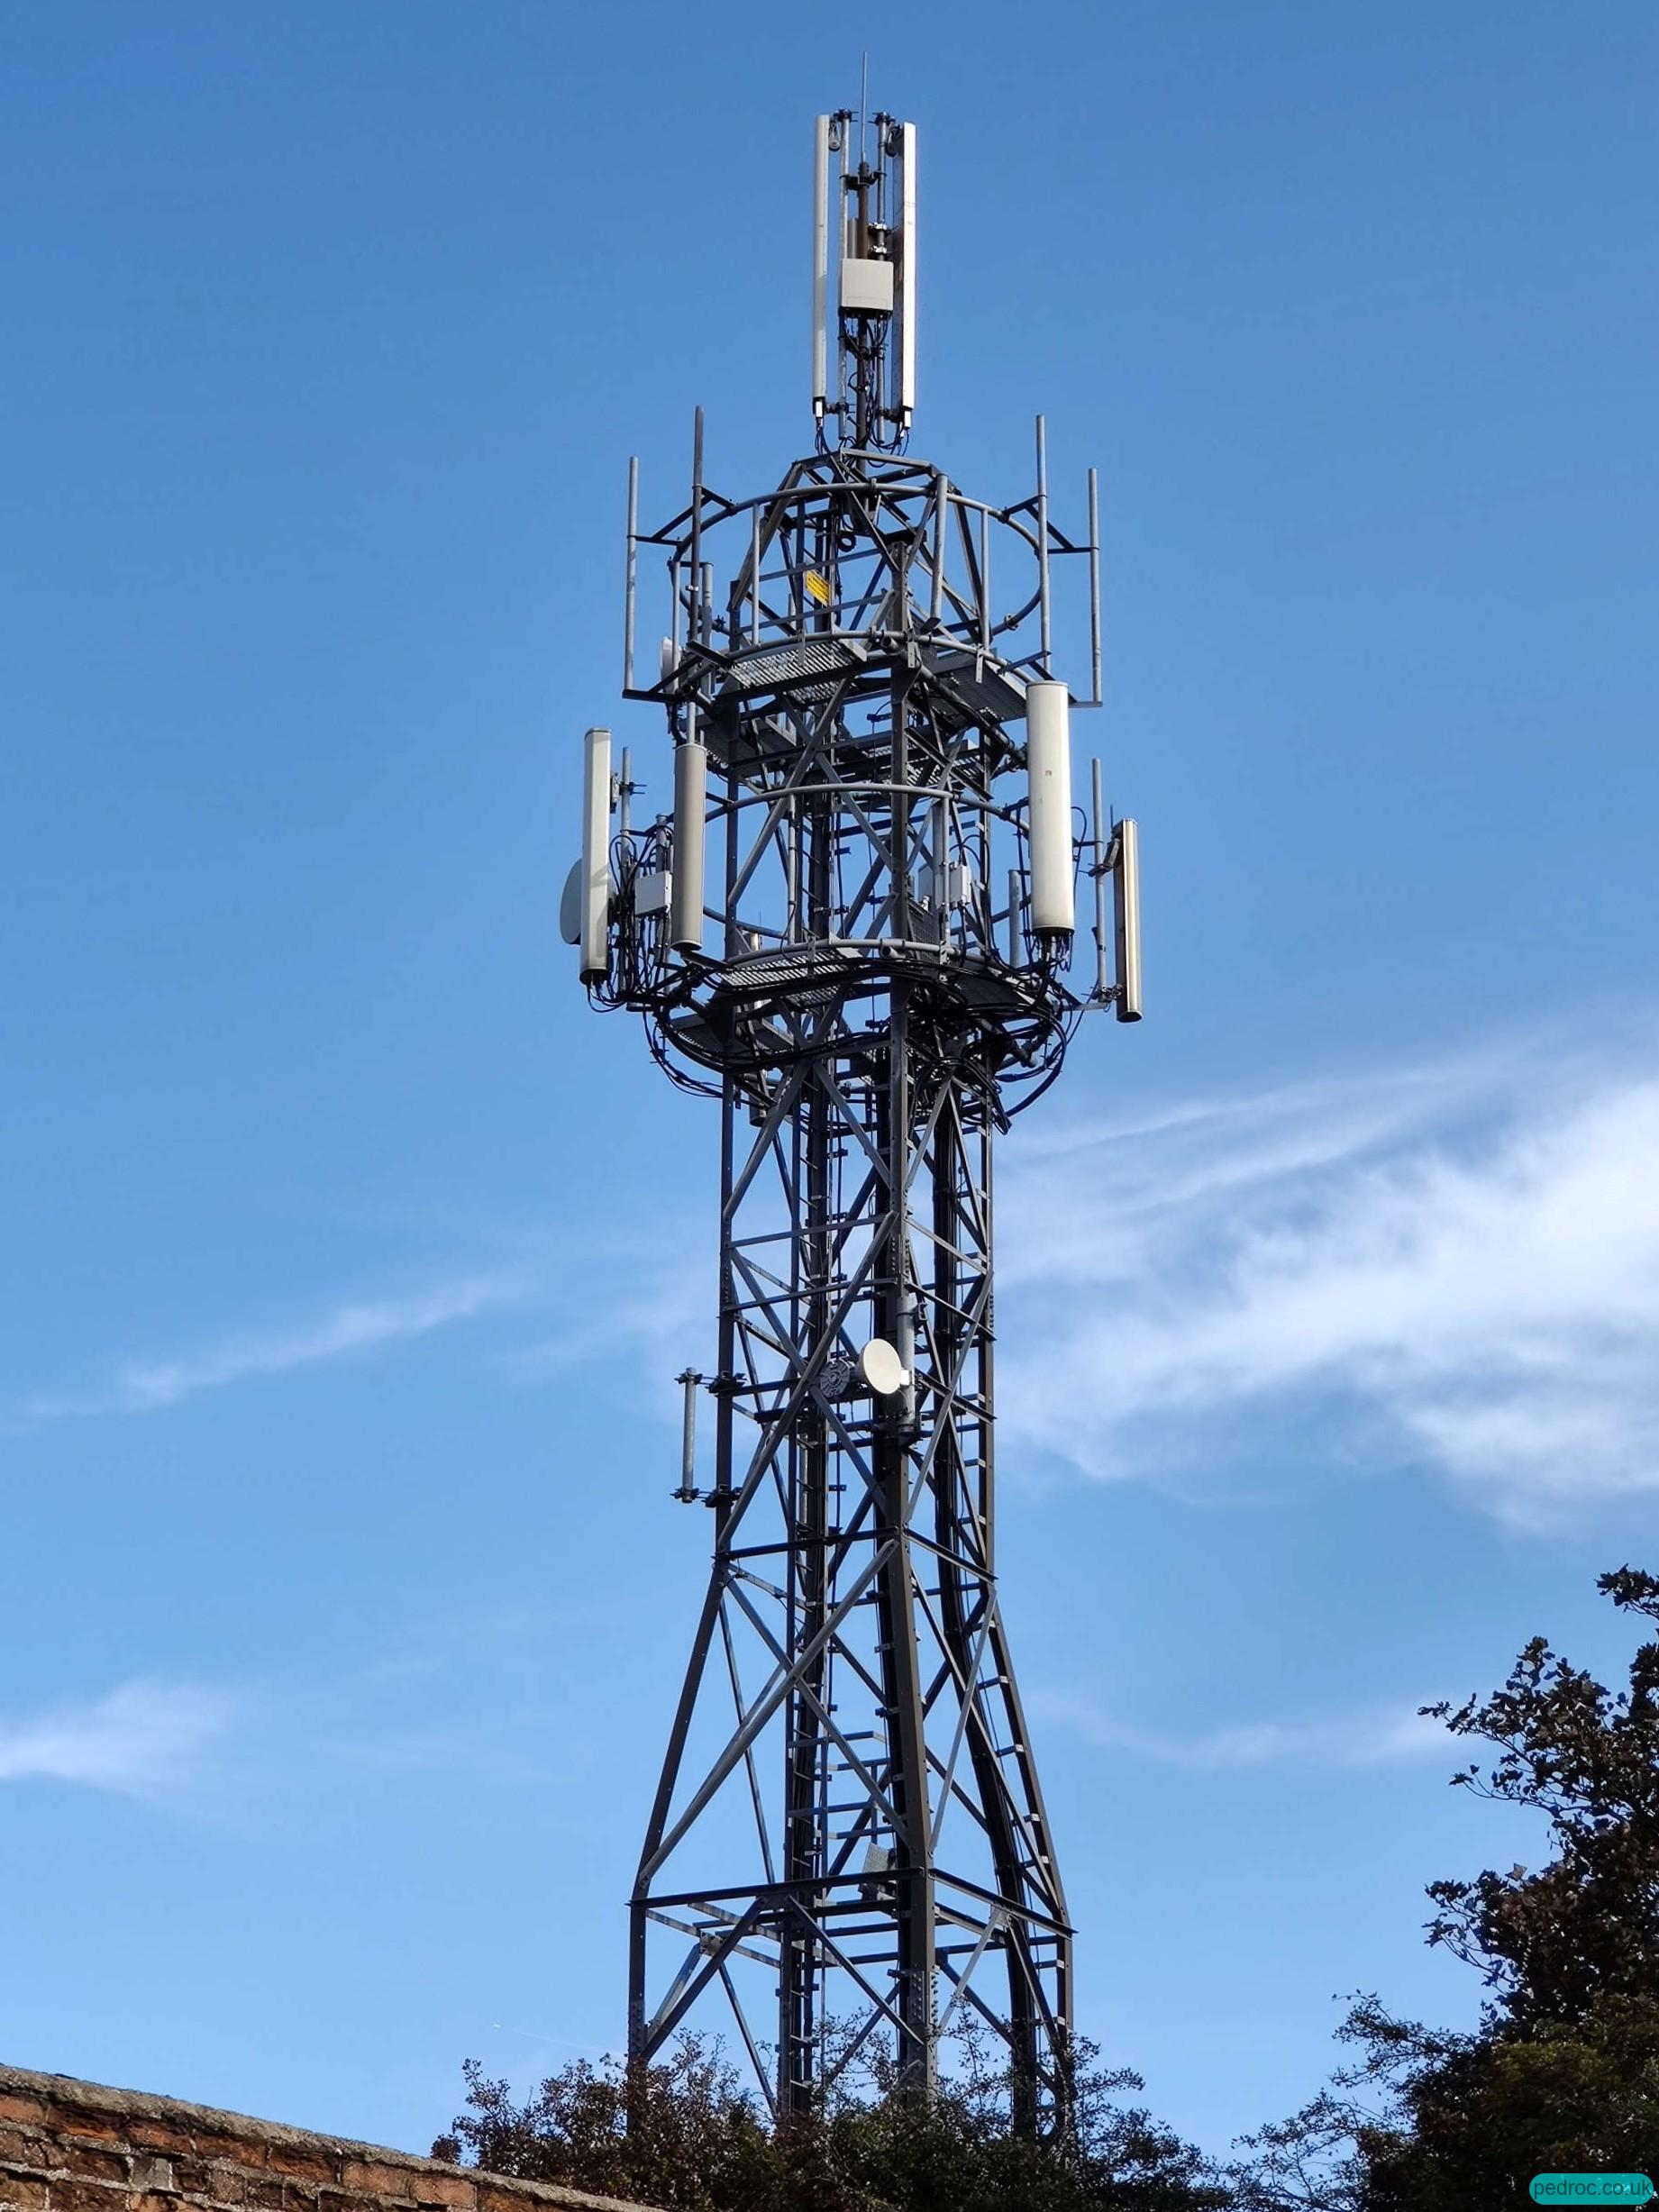 Three UK Chariot project Huawei mast rebuild with 2T2R near Reighton, Yorkshire